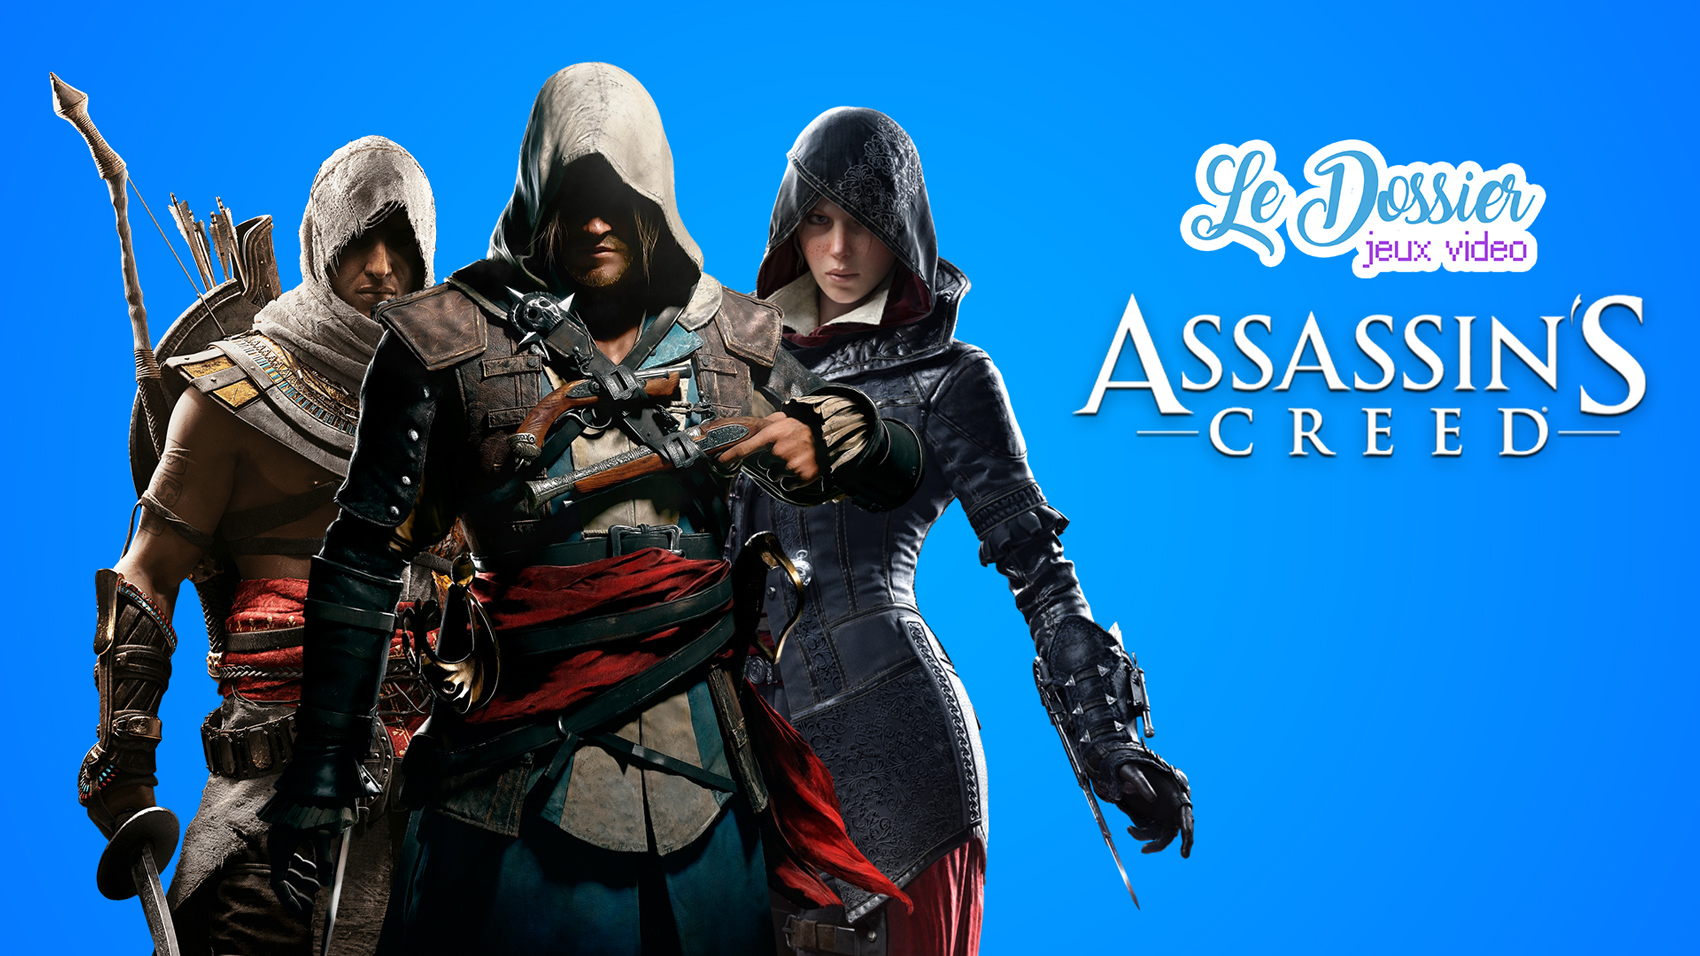 assassin's creed dossier